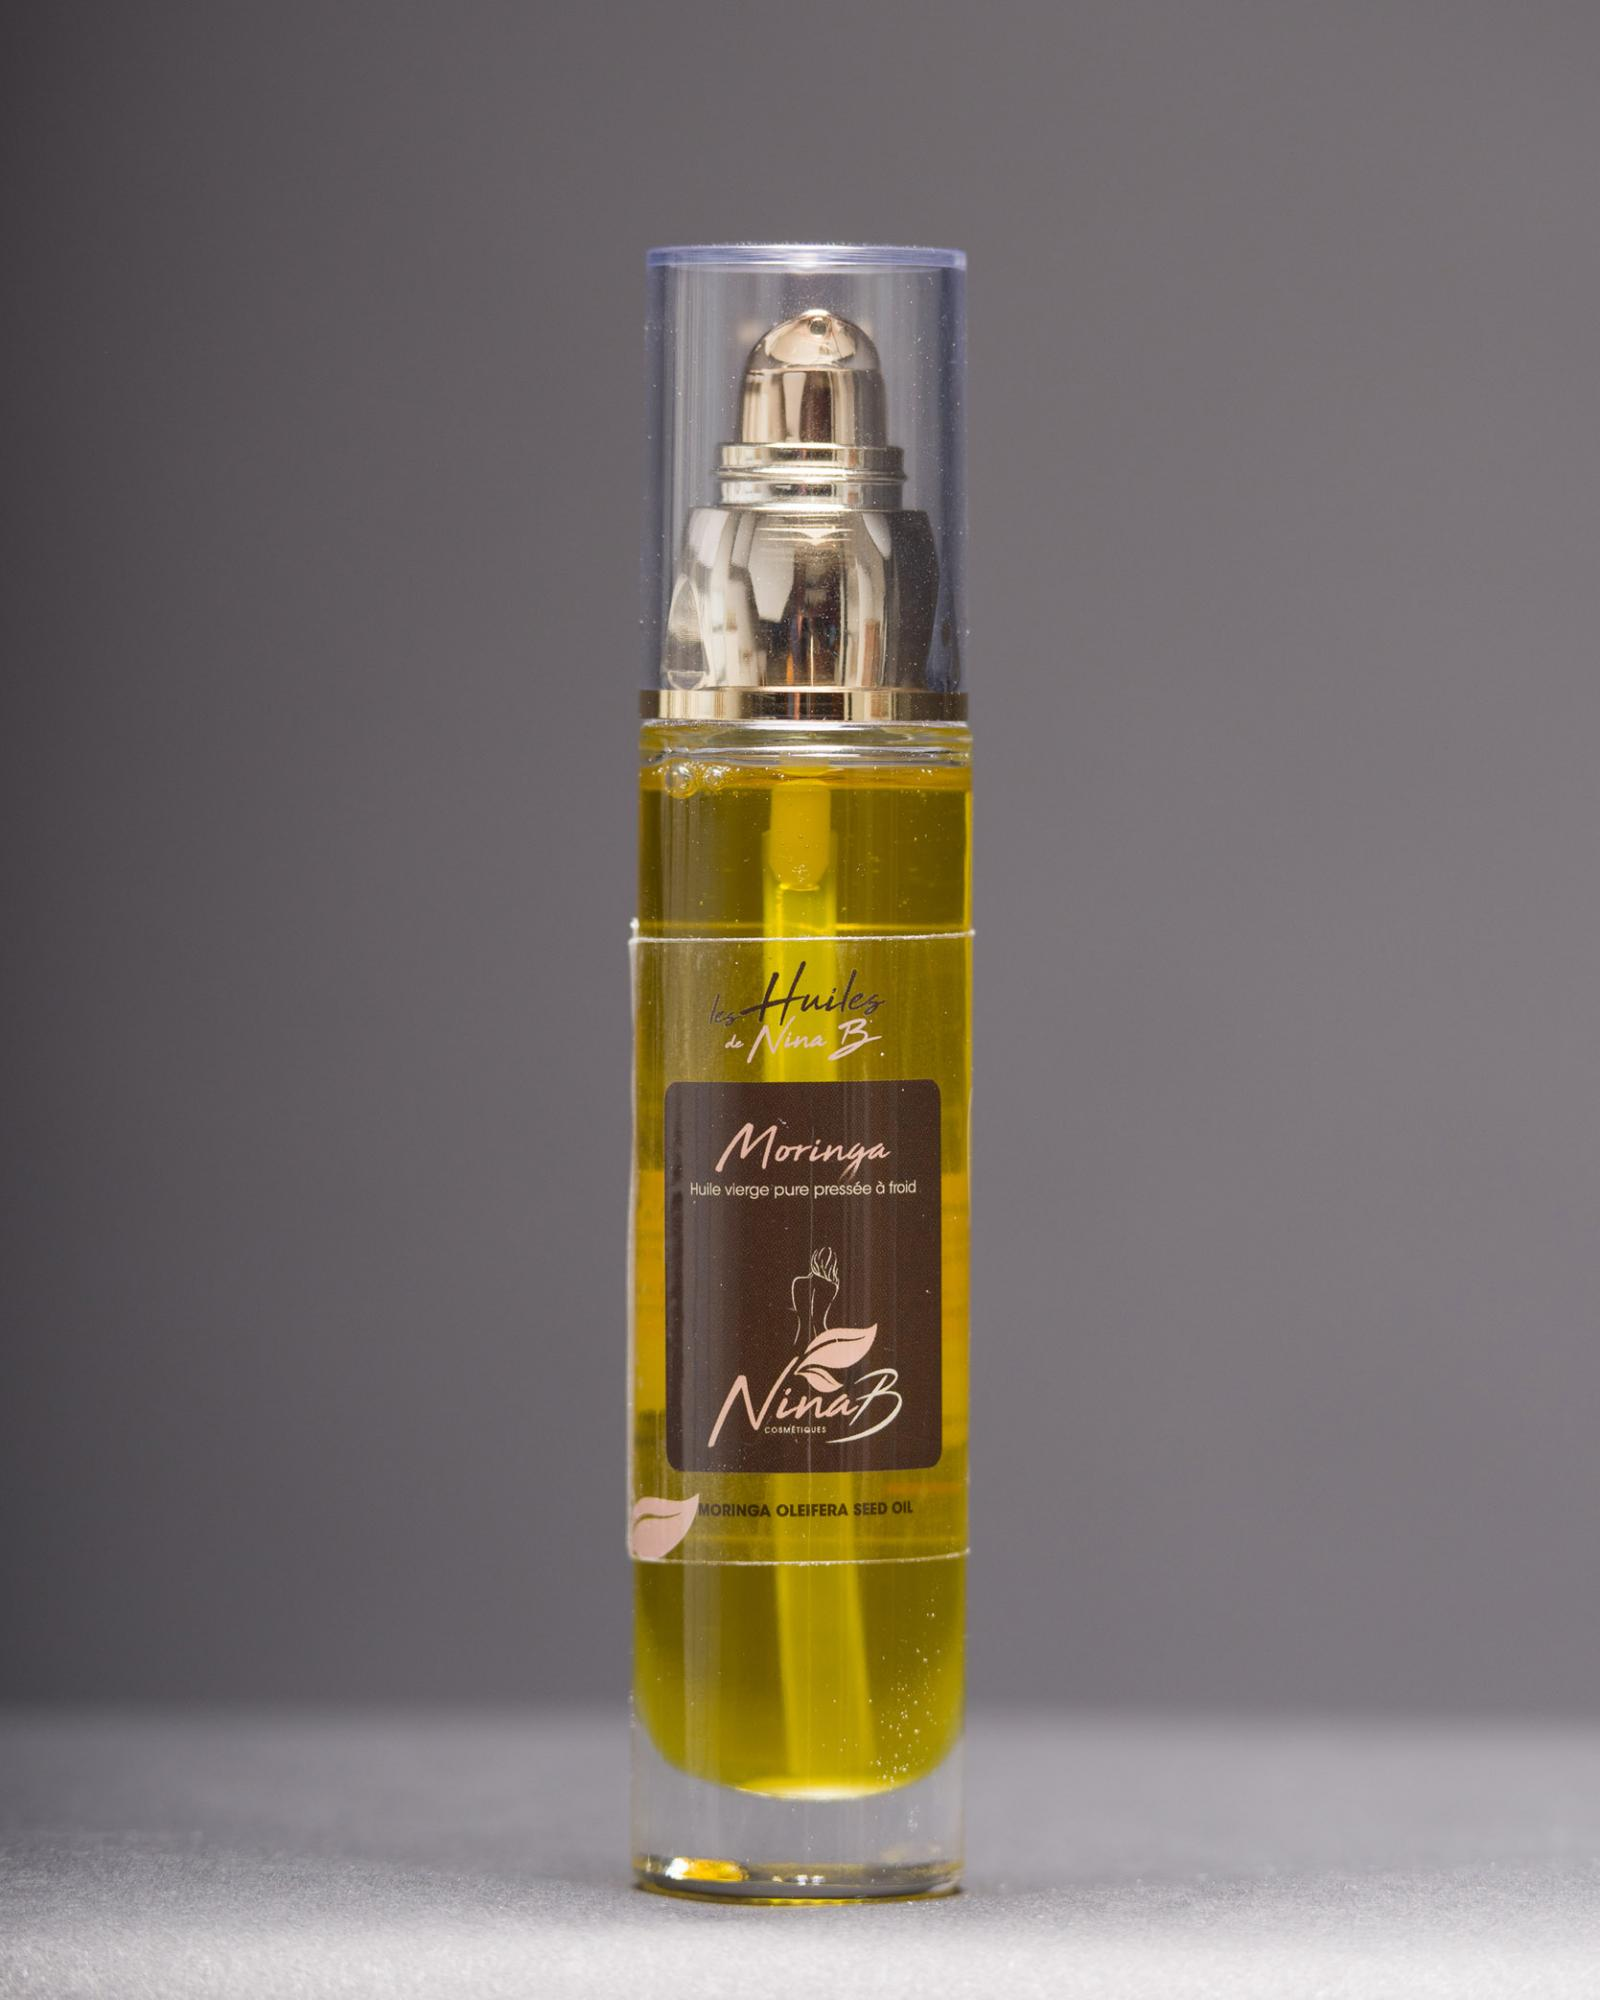 Virgin Moringa Oil Organic - Natural, organic cosmetic product, certified ECOCERT COSMOS ORGANIC